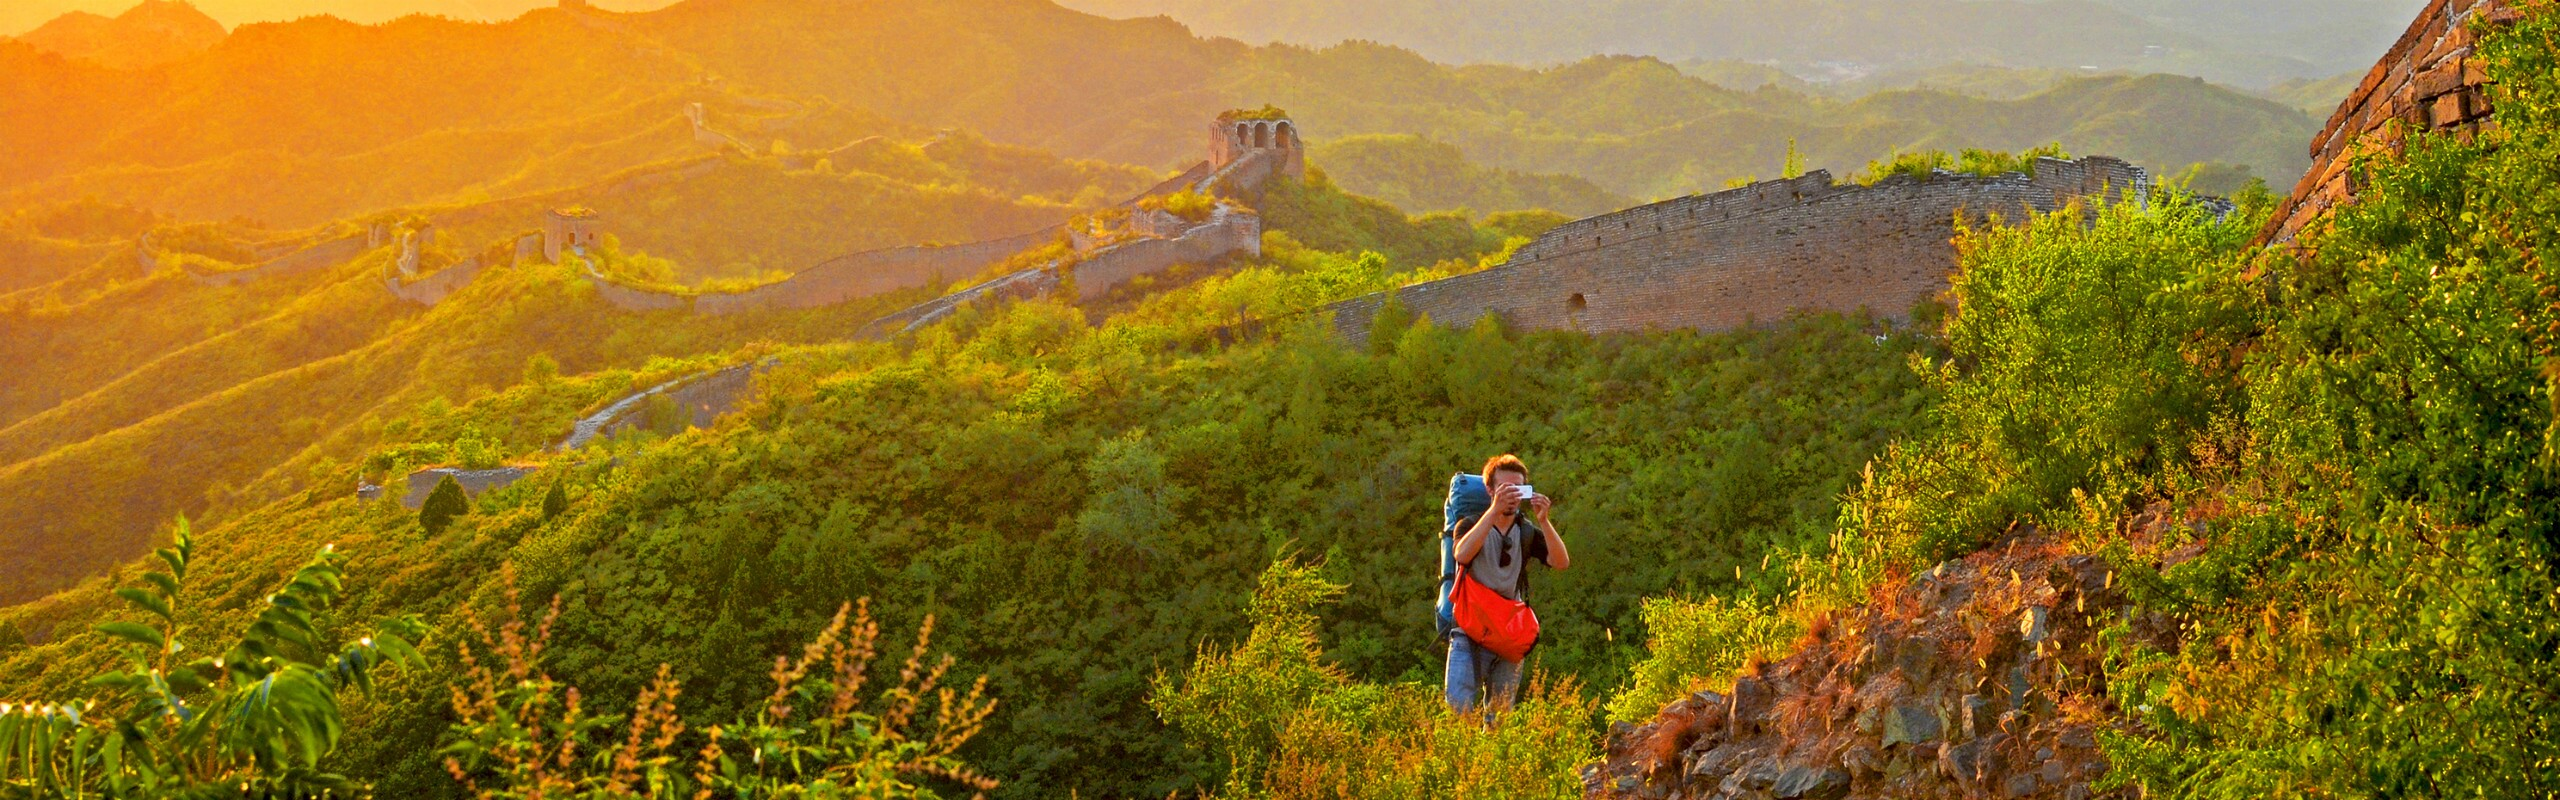 12 Days Beijing, Xi'an, Guilin, Shanghai Tour for Your Summer Vacation